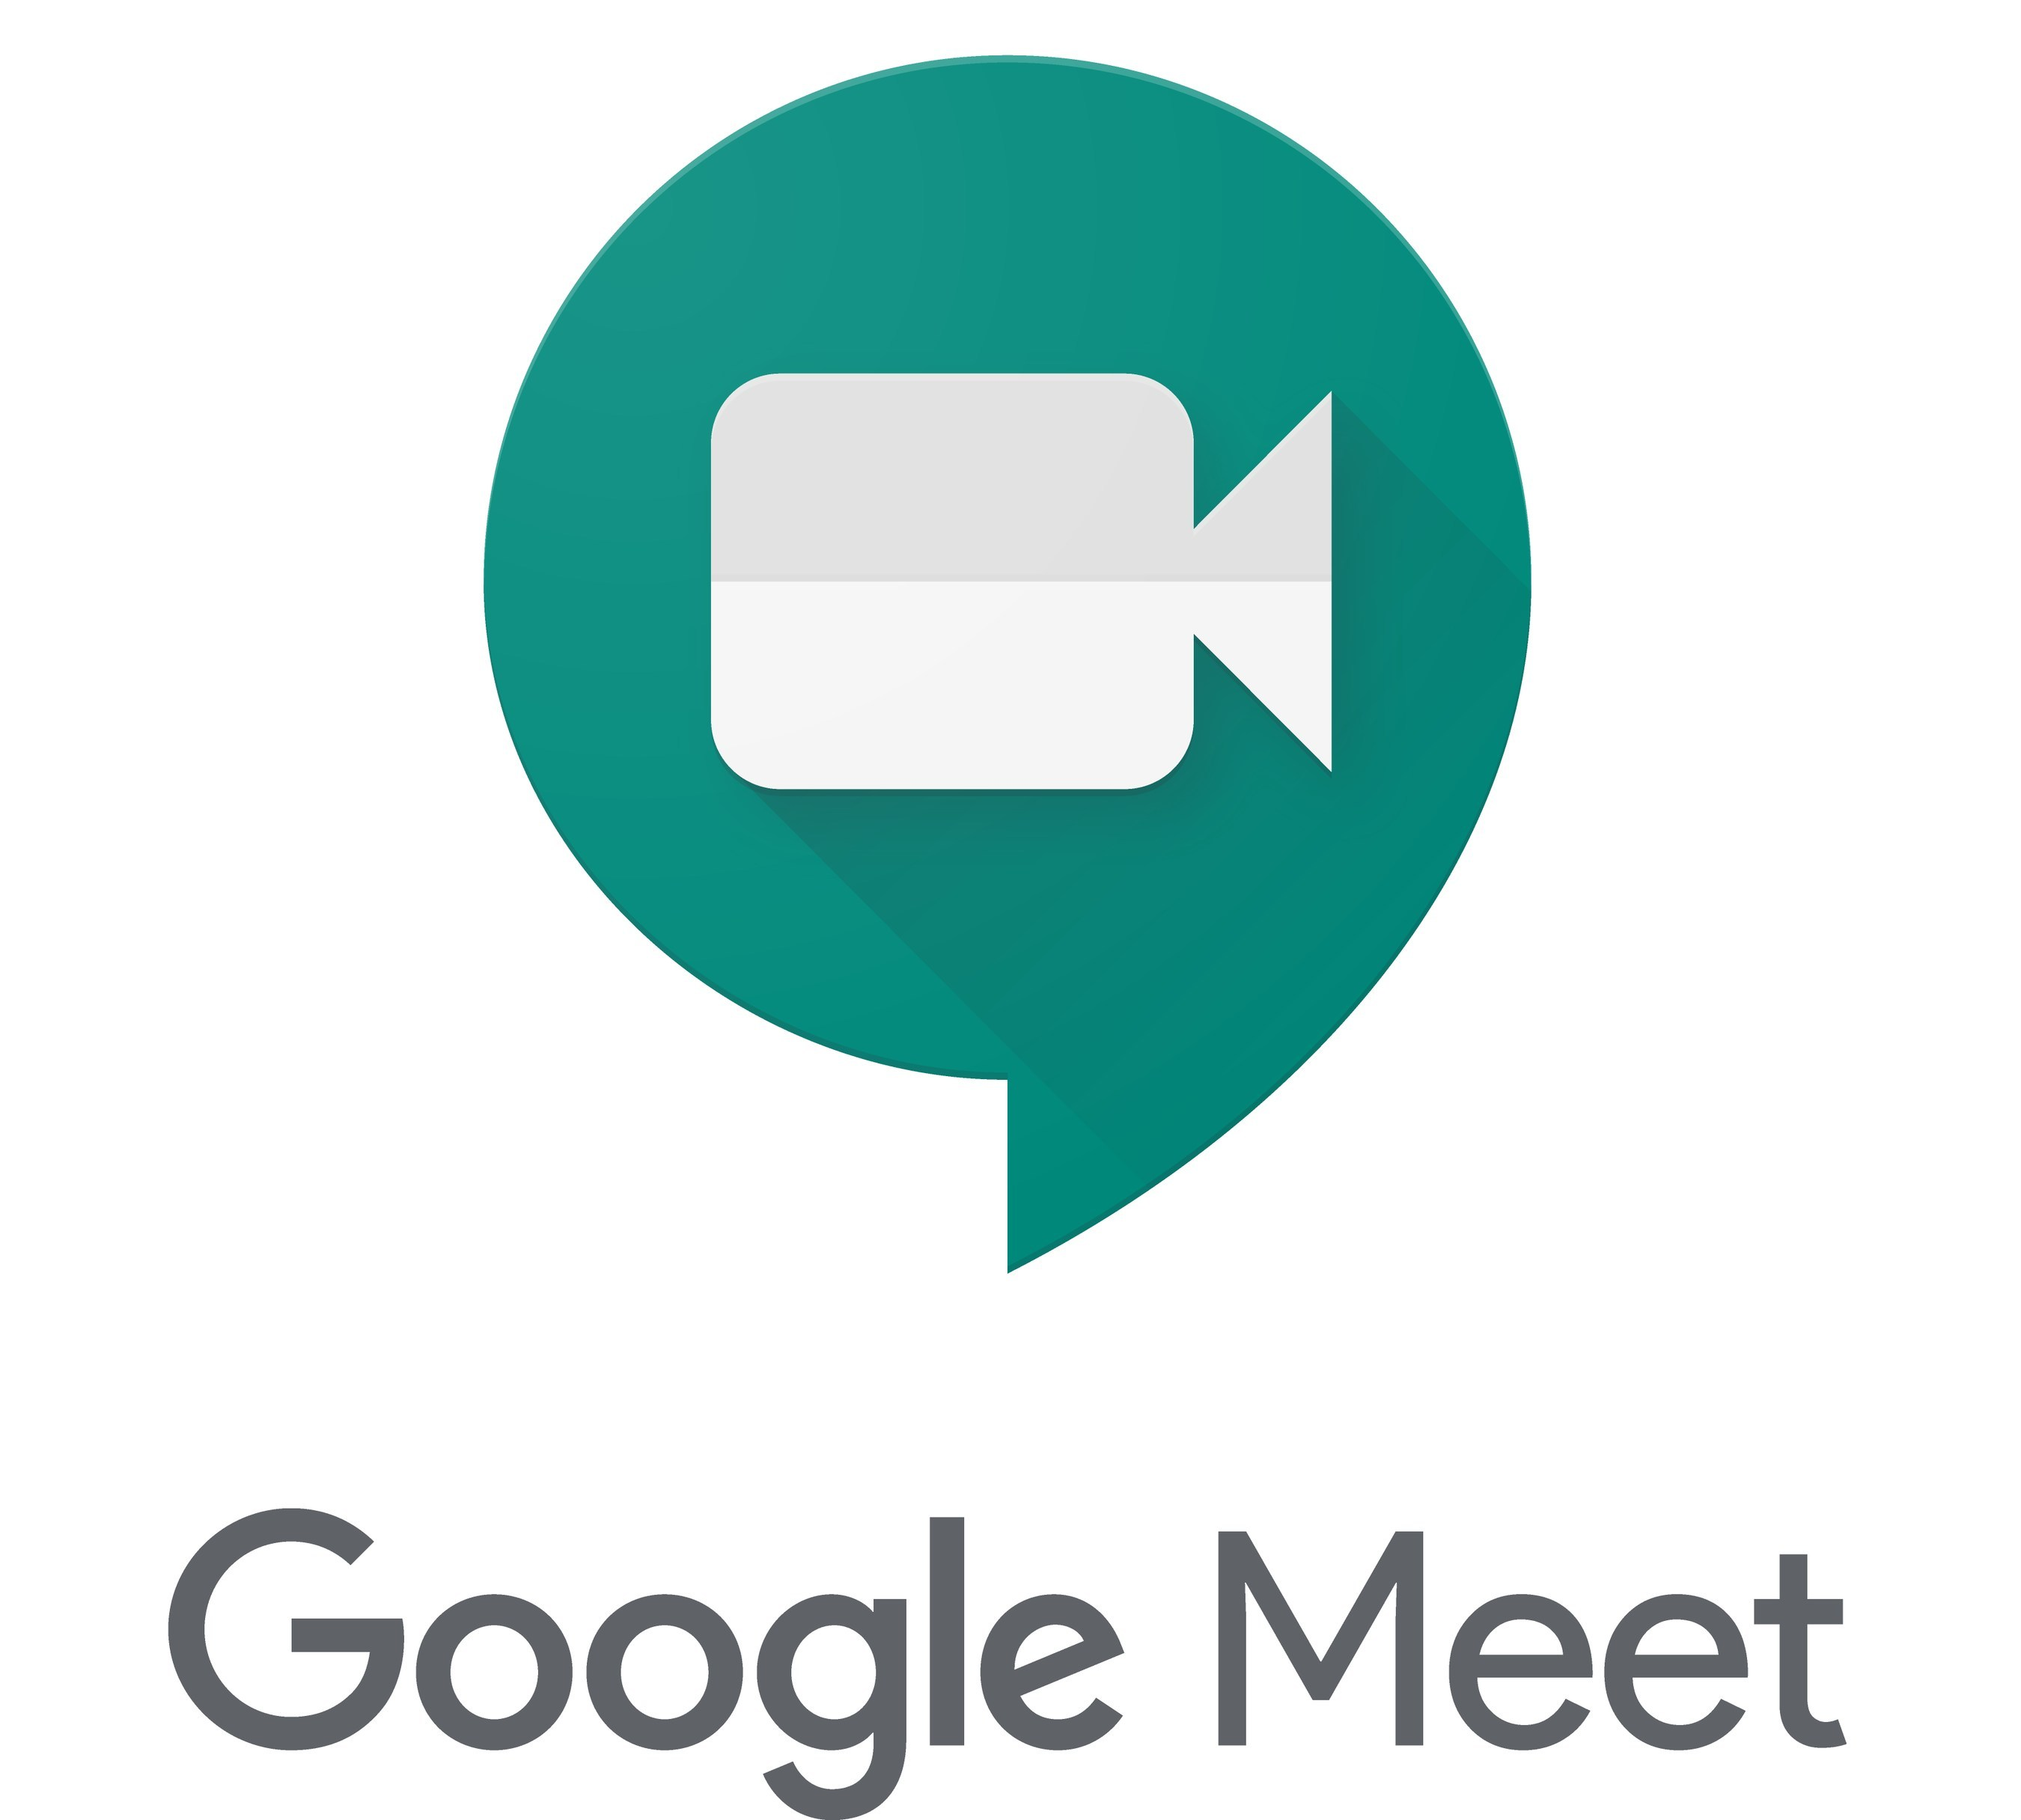 Google Meet now free for all, coming in Gmail soon